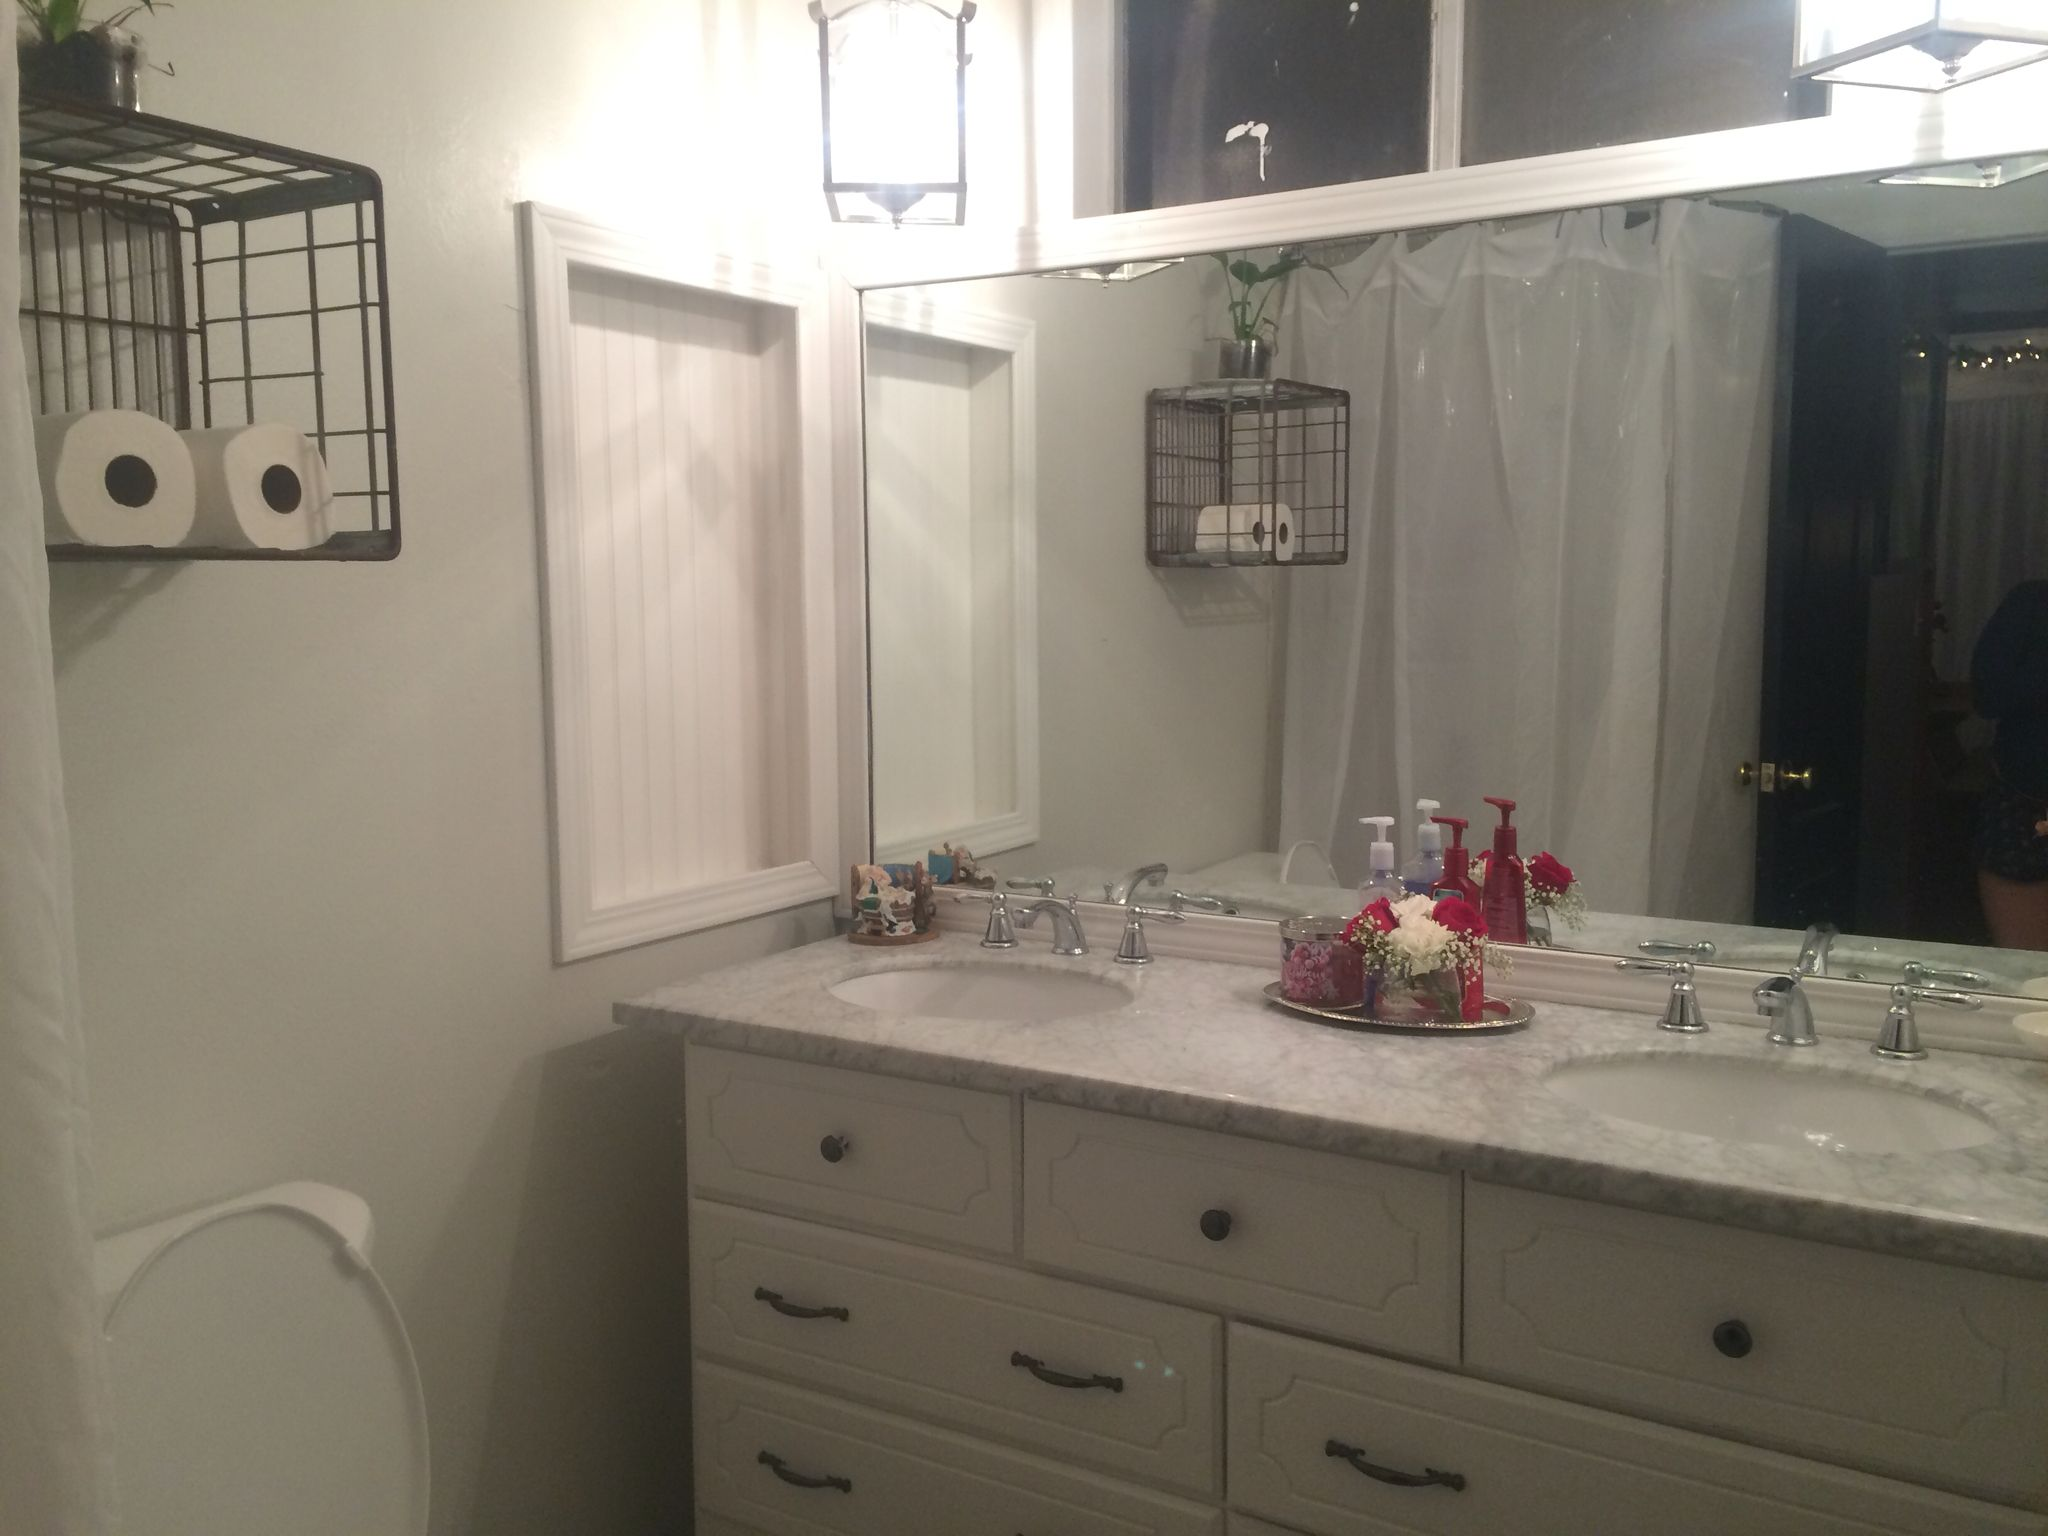 Fixer Upper Bathroom Style Diy Bathroom Vanity From Dresser Crate For  Storage Beadboard Gray And White